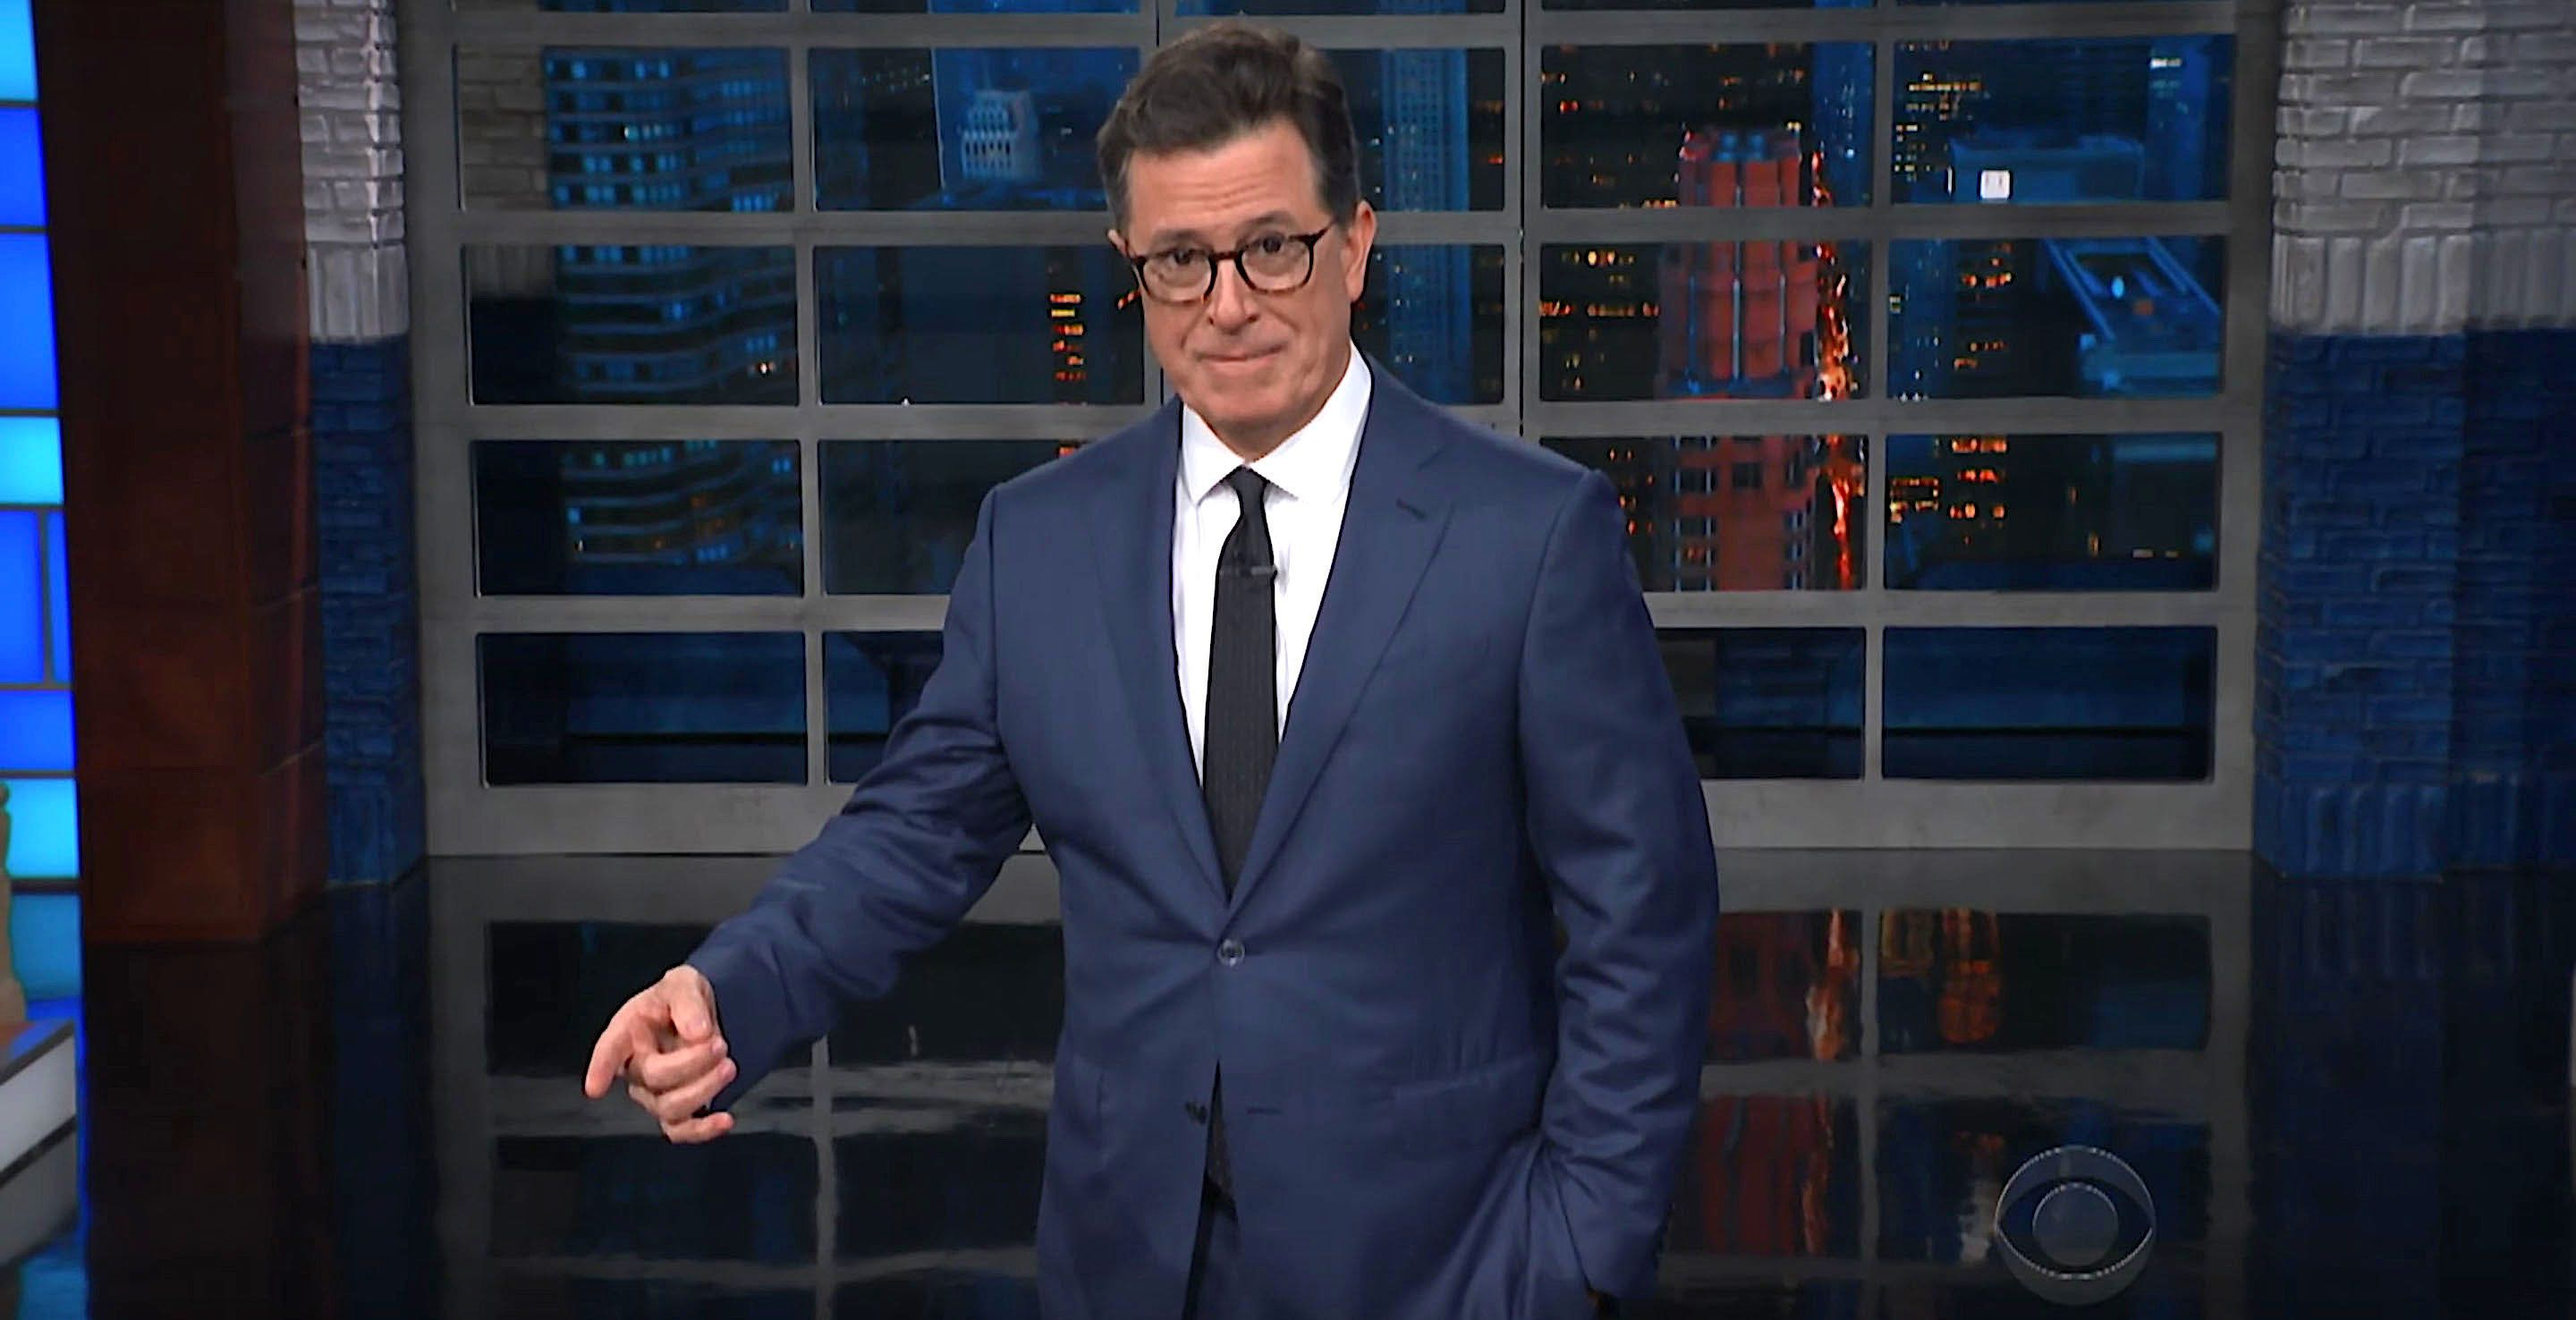 Stephen Colbert had some things to say about Kellyanne Conways comments Wednesday